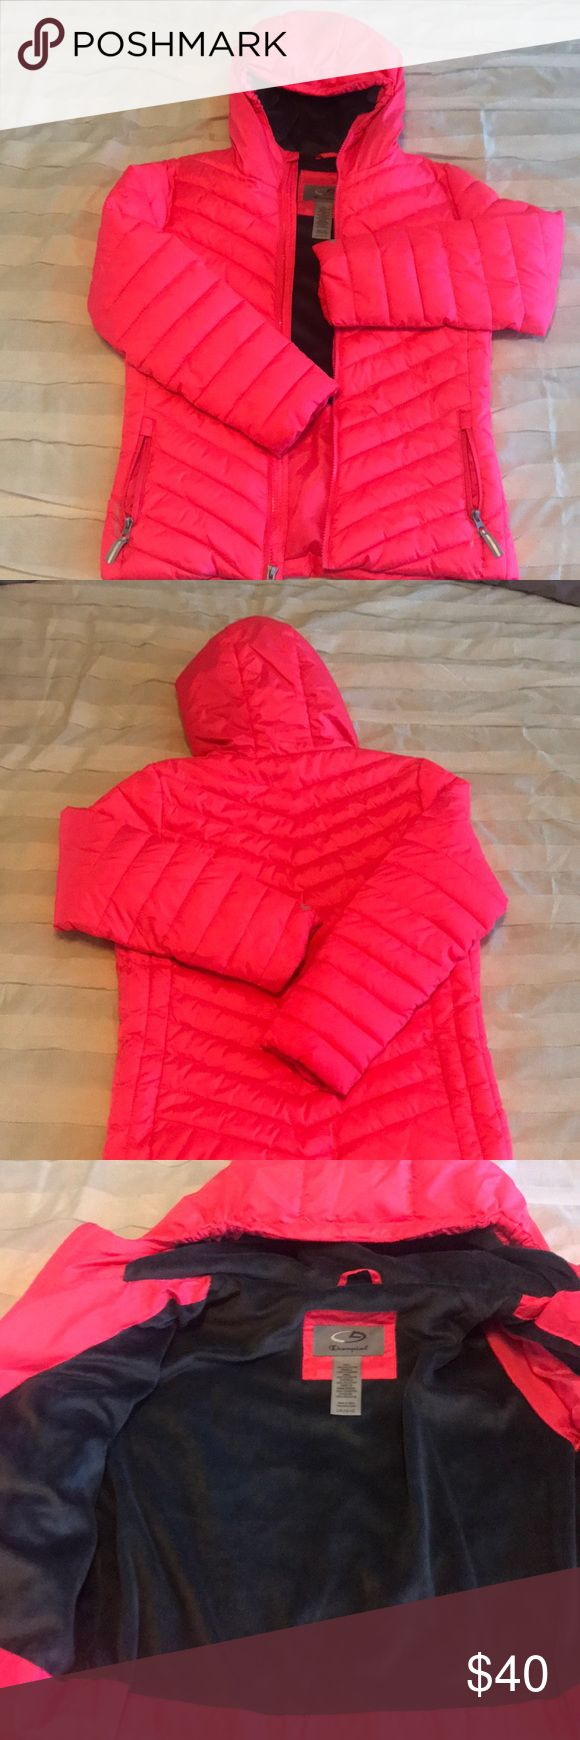 Girl's Champion Hooded Ventureloft Puffer Coat EUC - probably only worn once or twice. Beautiful bright, neon pink shell with dark charcoal partial fleece lining and fleece lined hood. Girl's Size L - 10/12. Champion Jackets & Coats Puffers